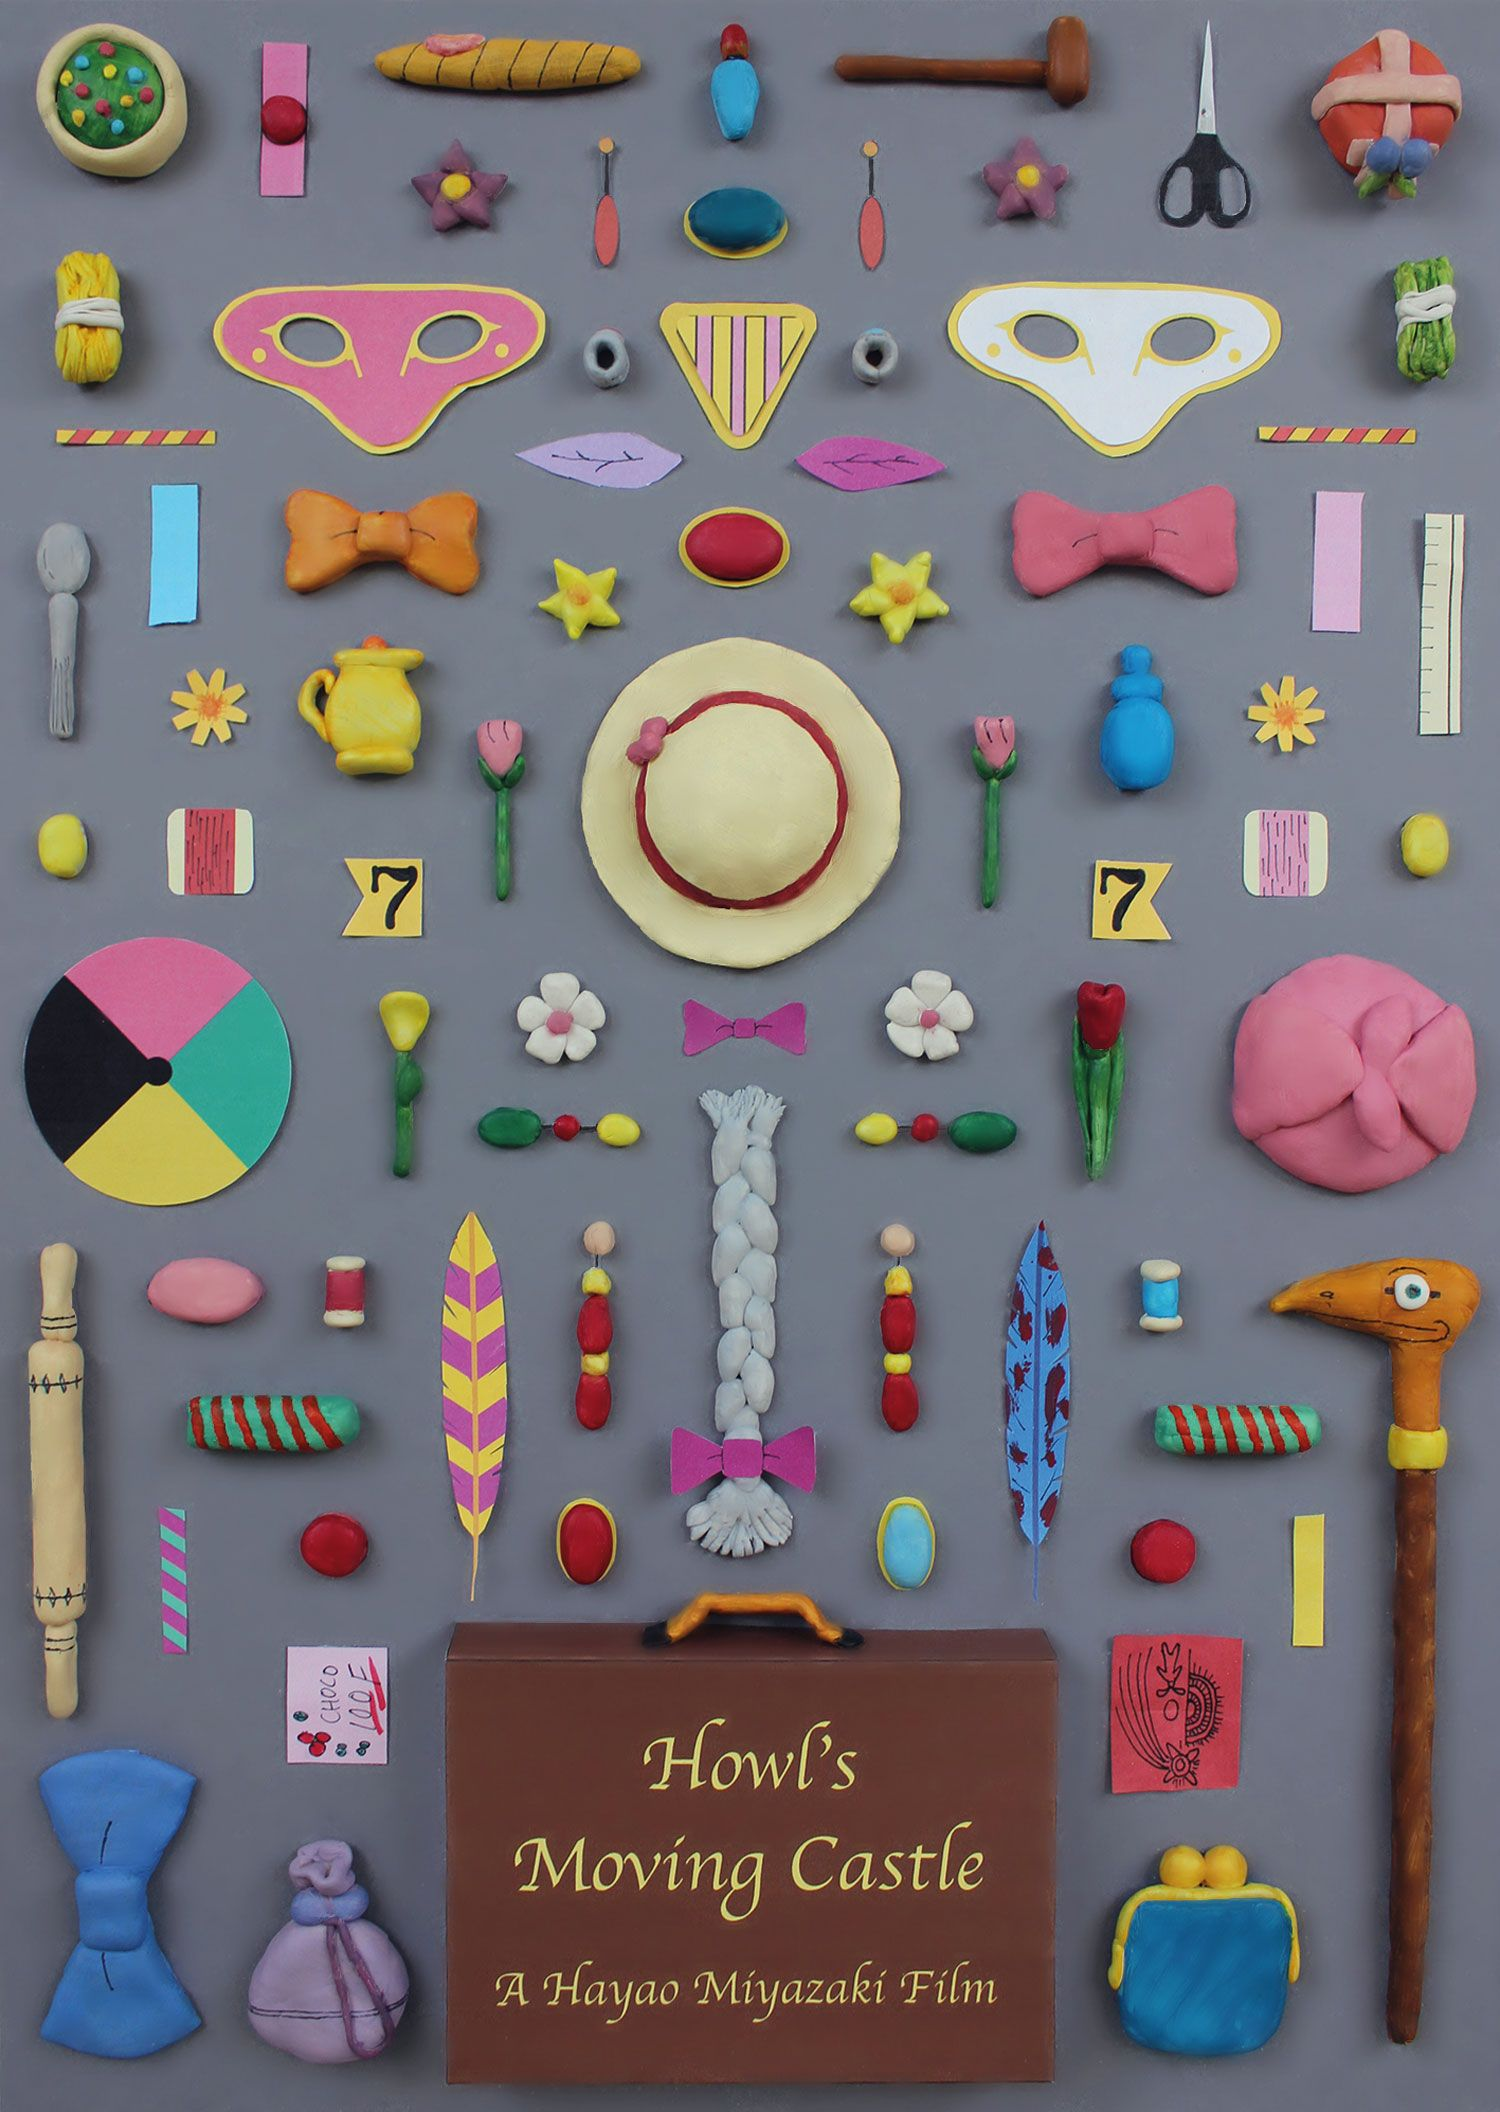 Every Important Object From Miyazaki Films In Movie Poster Form